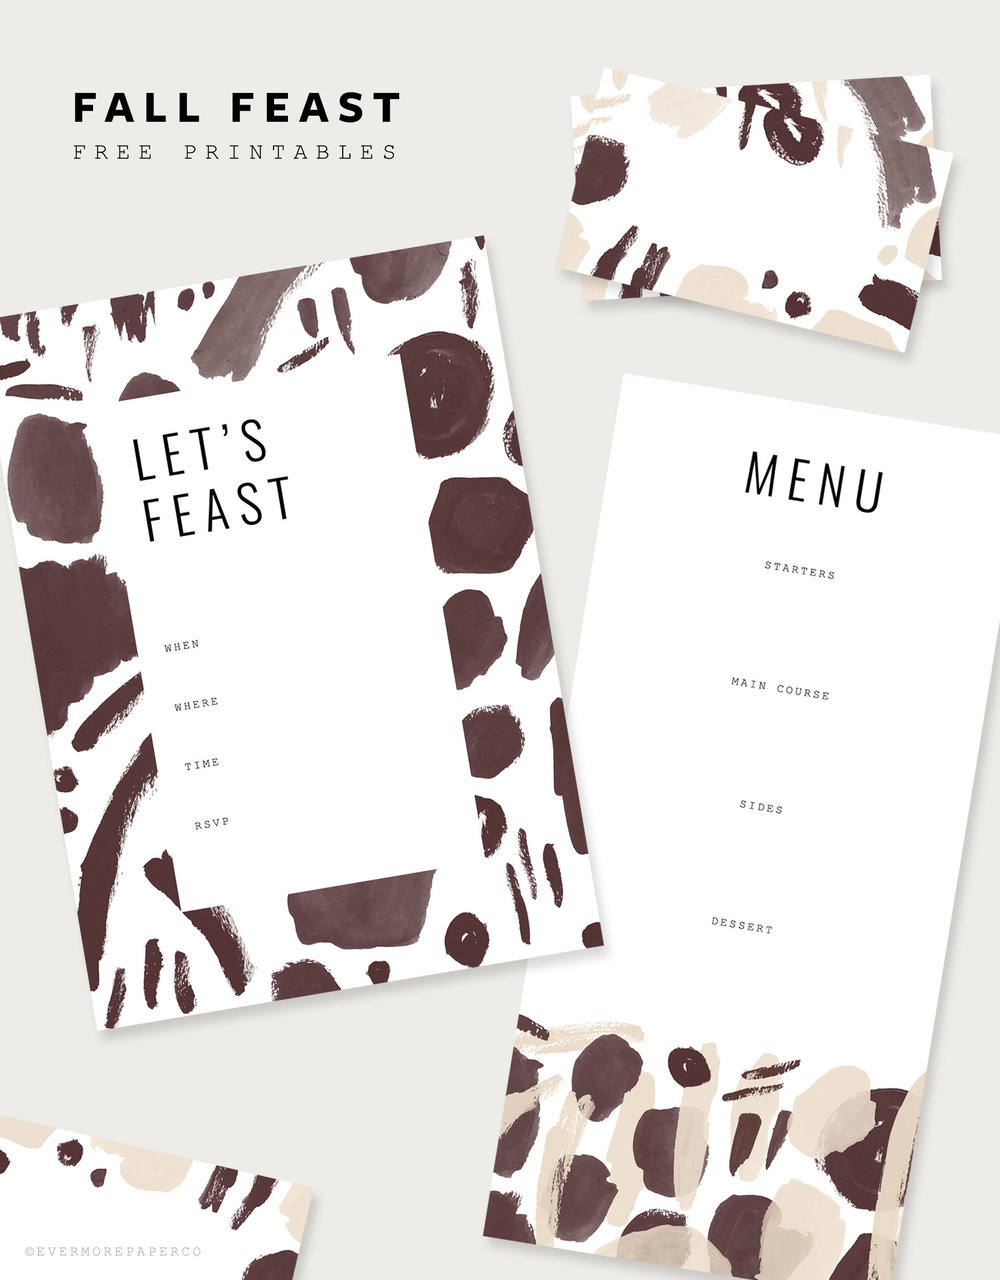 Fall Feast Free Printables | Dinner invite, menu & place cards by Evermore Paper Co.